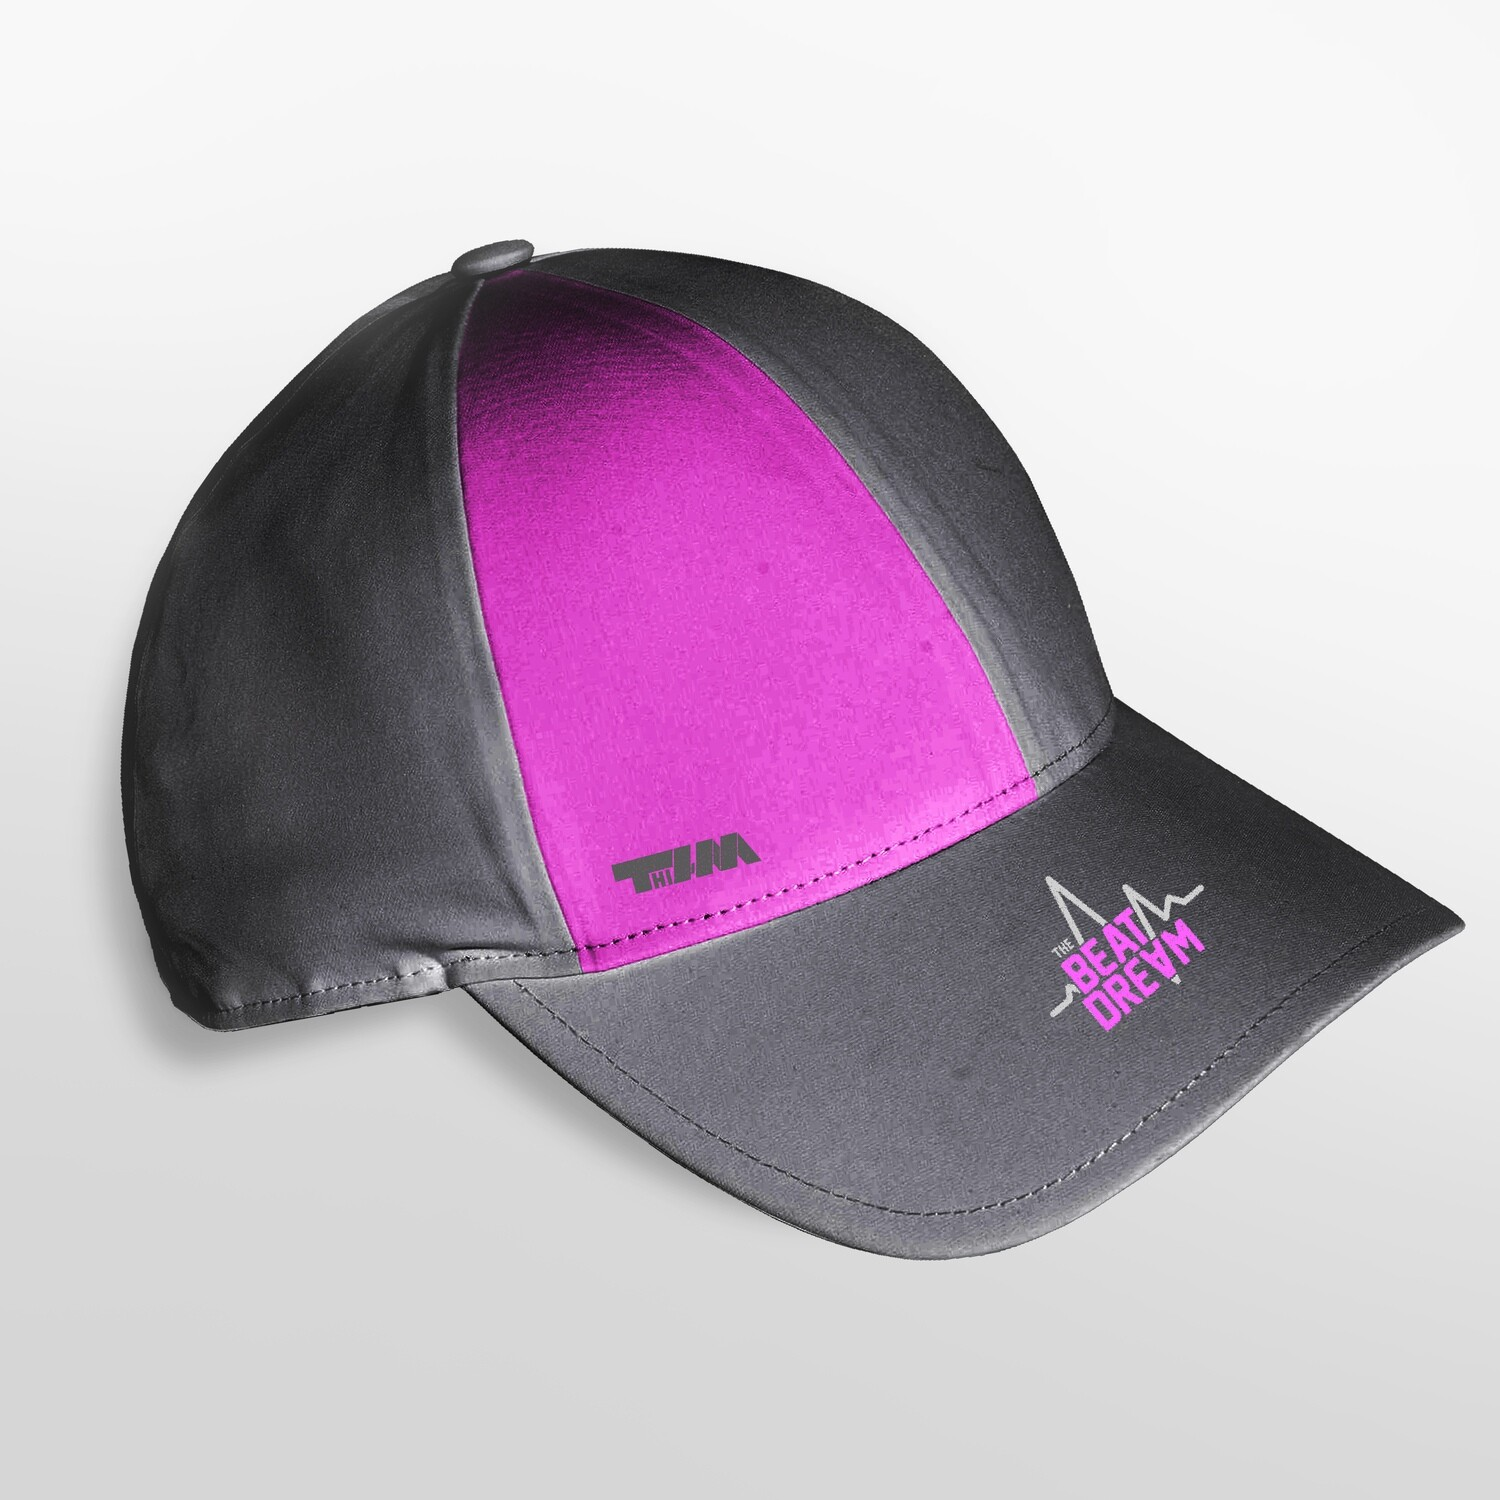 cap inspirated by Seba style